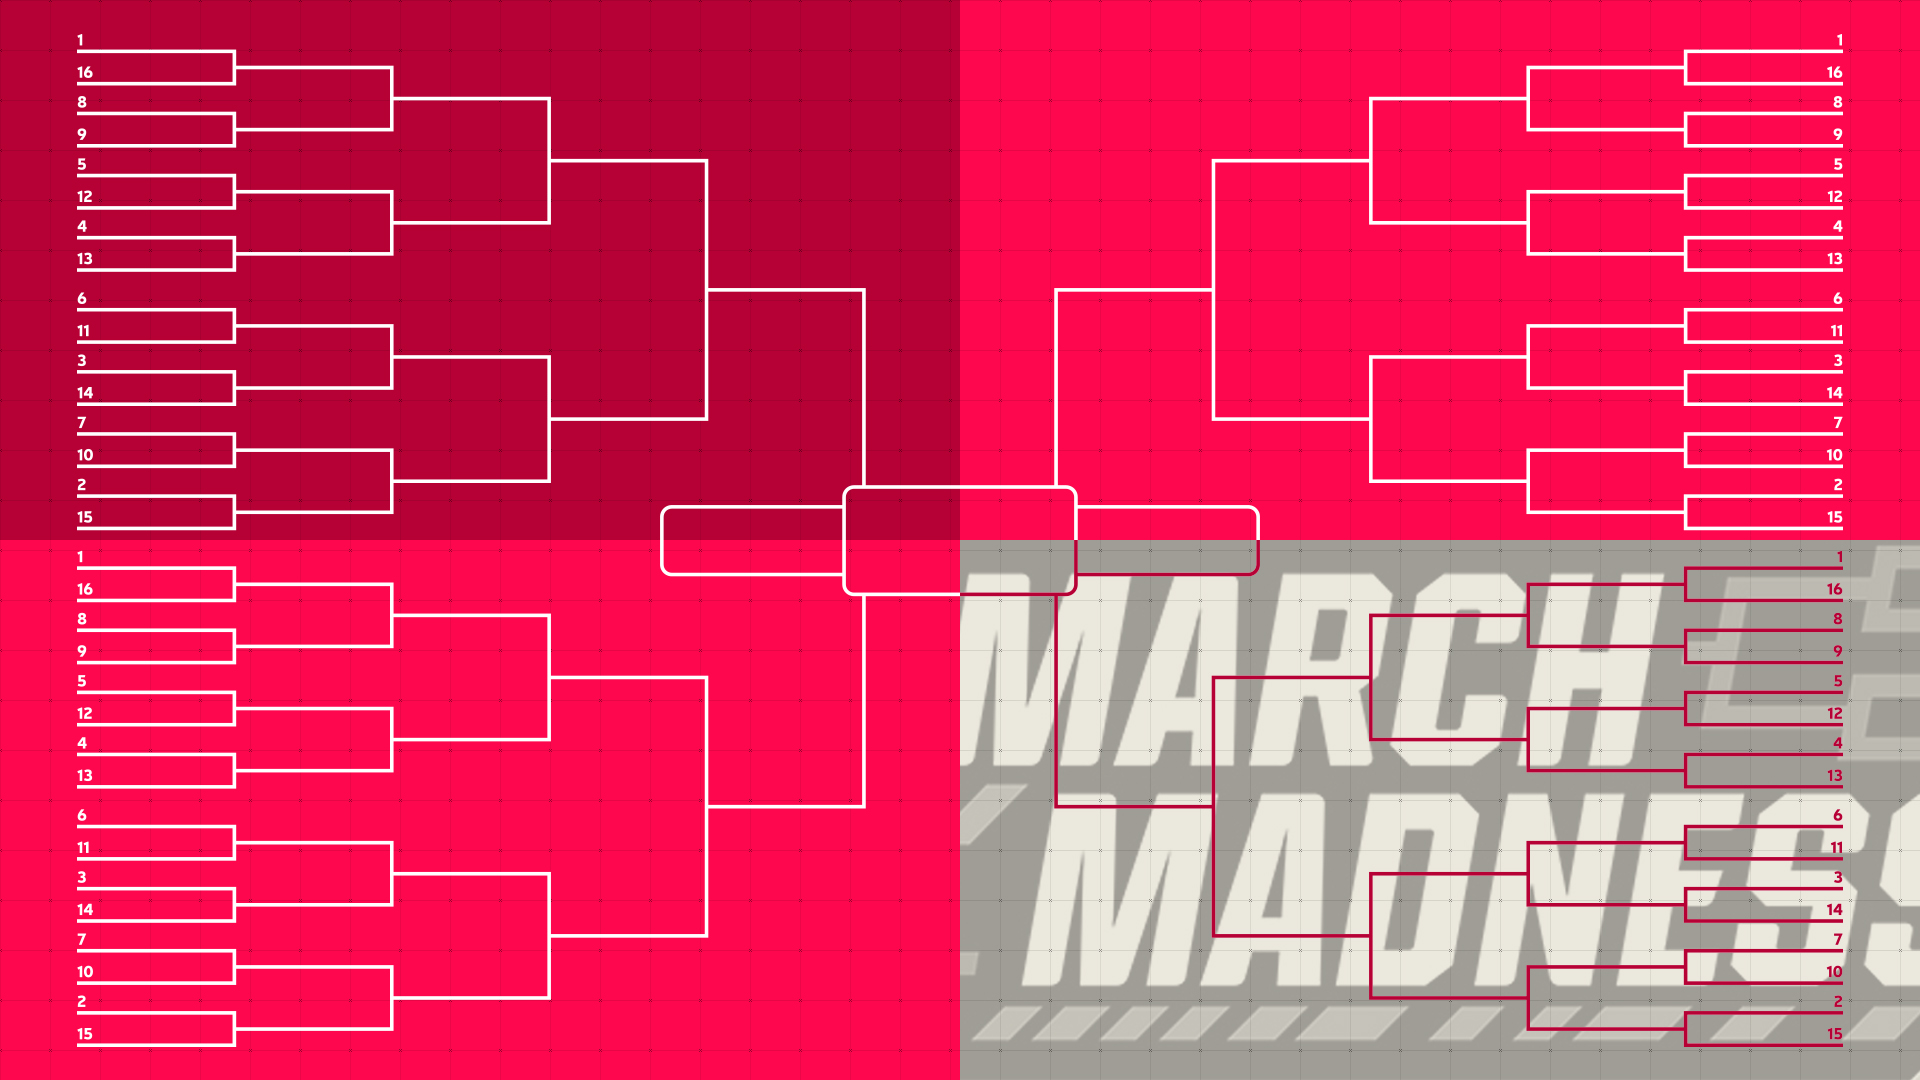 graphic about Sweet 16 Printable Bracket titled March Insanity program 2019: Elite 8 tipoff instances, Television set